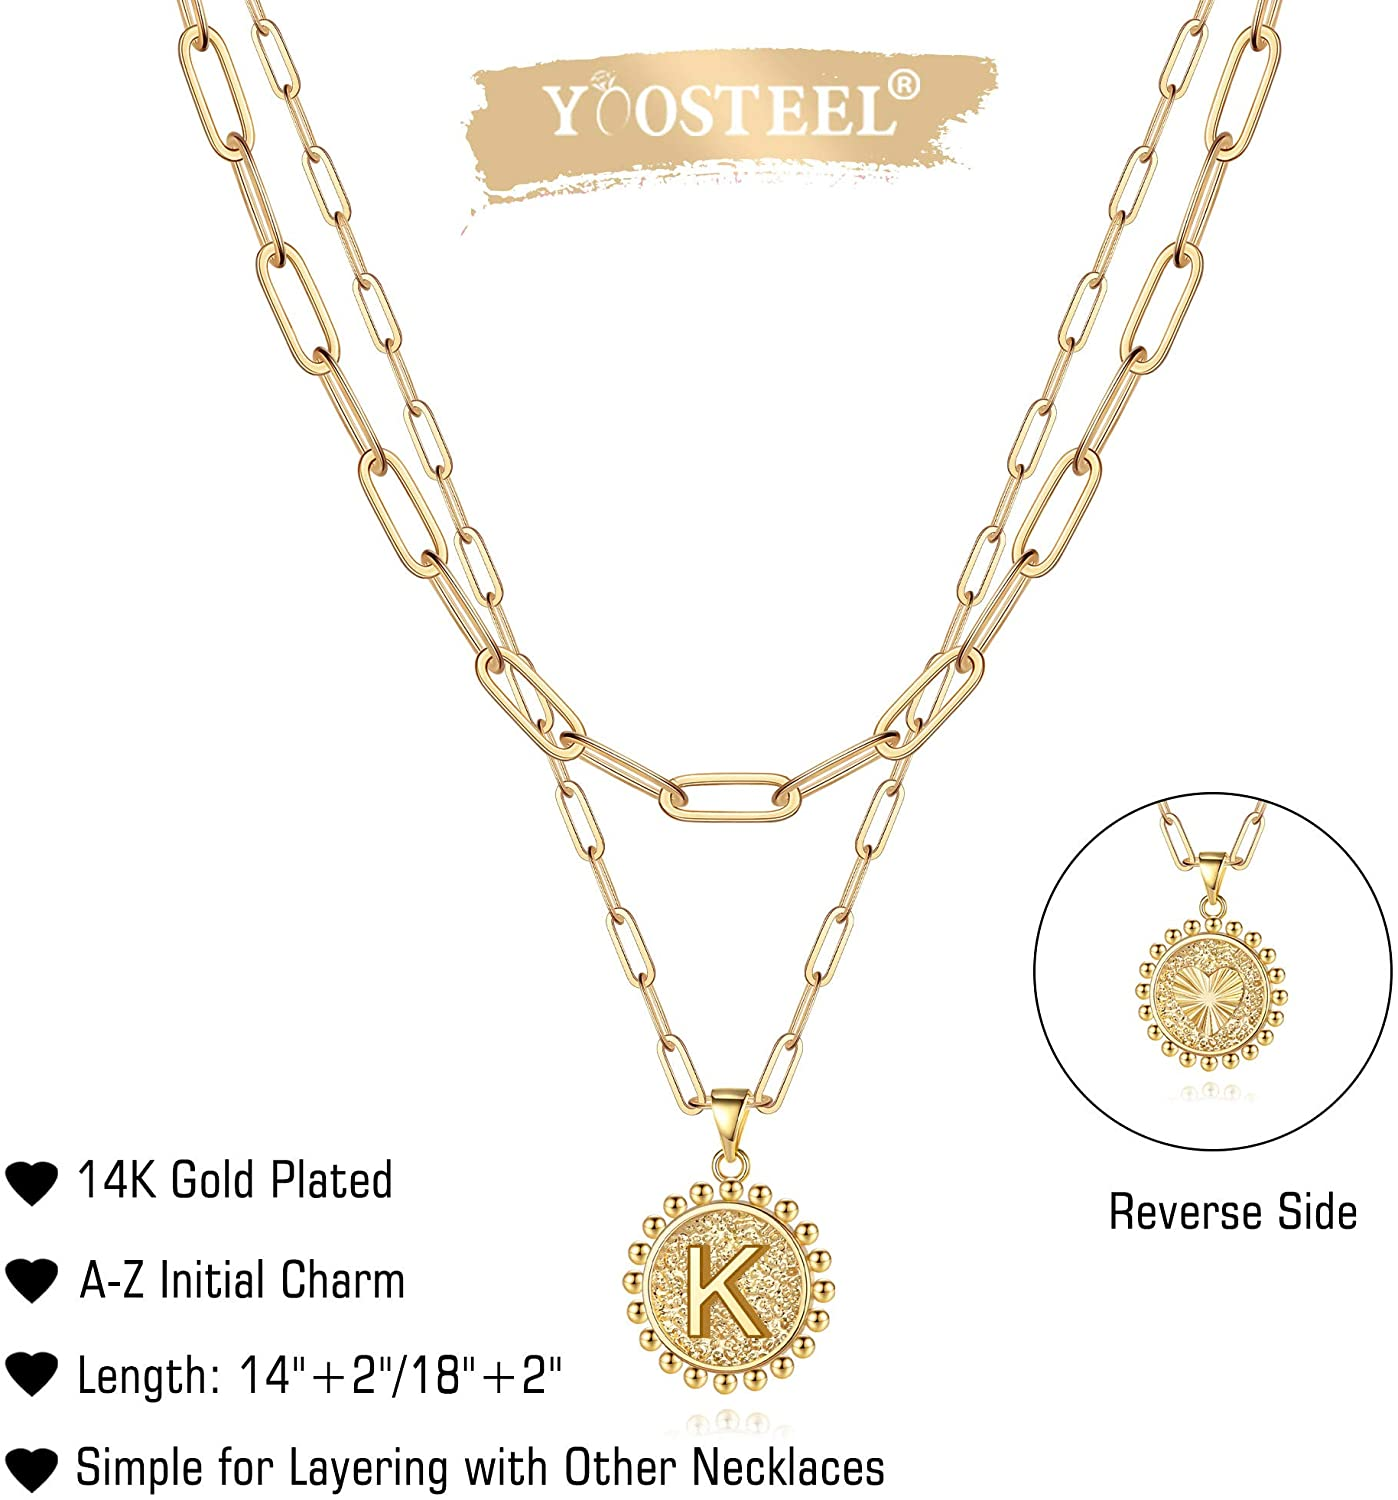 Yoosteel Gold Initial Necklaces for Women Girls, 14K Gold Plated Dainty Layering Paperclip Link Chain Necklace Personalized Coin Initial Layered Gold Necklaces for Women